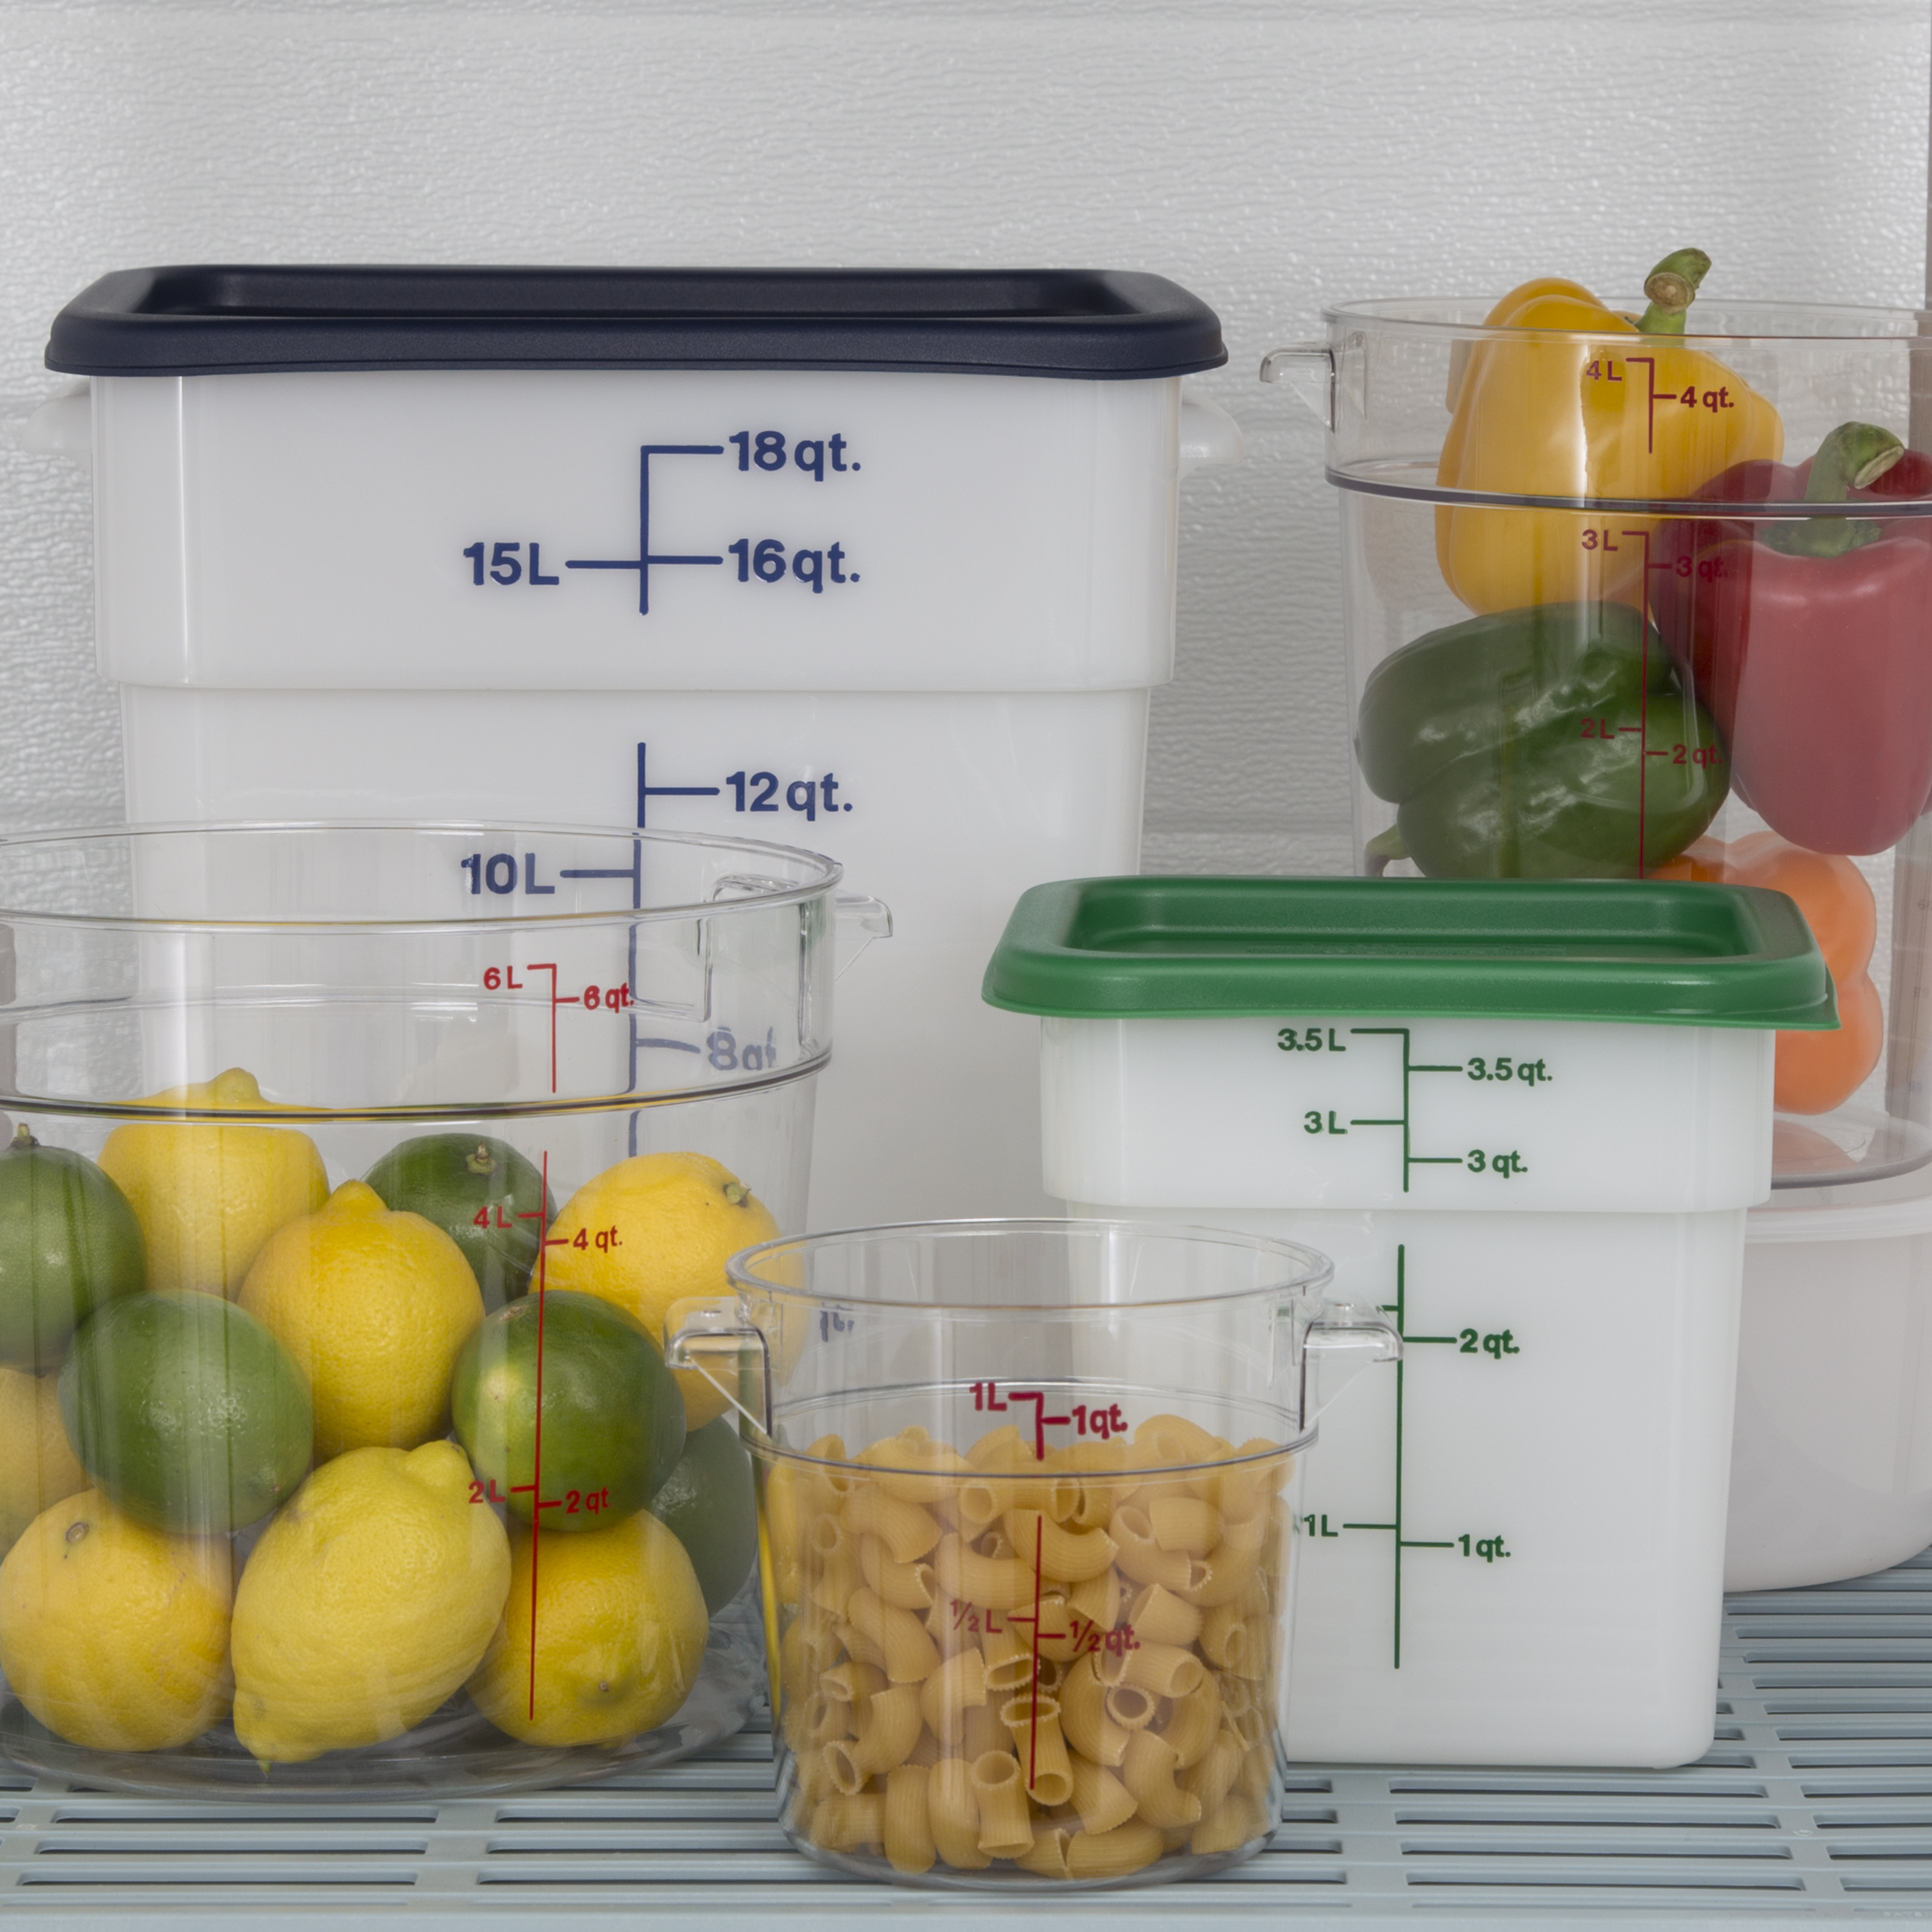 Storing Food Properly To Ensure Food Safety In Your